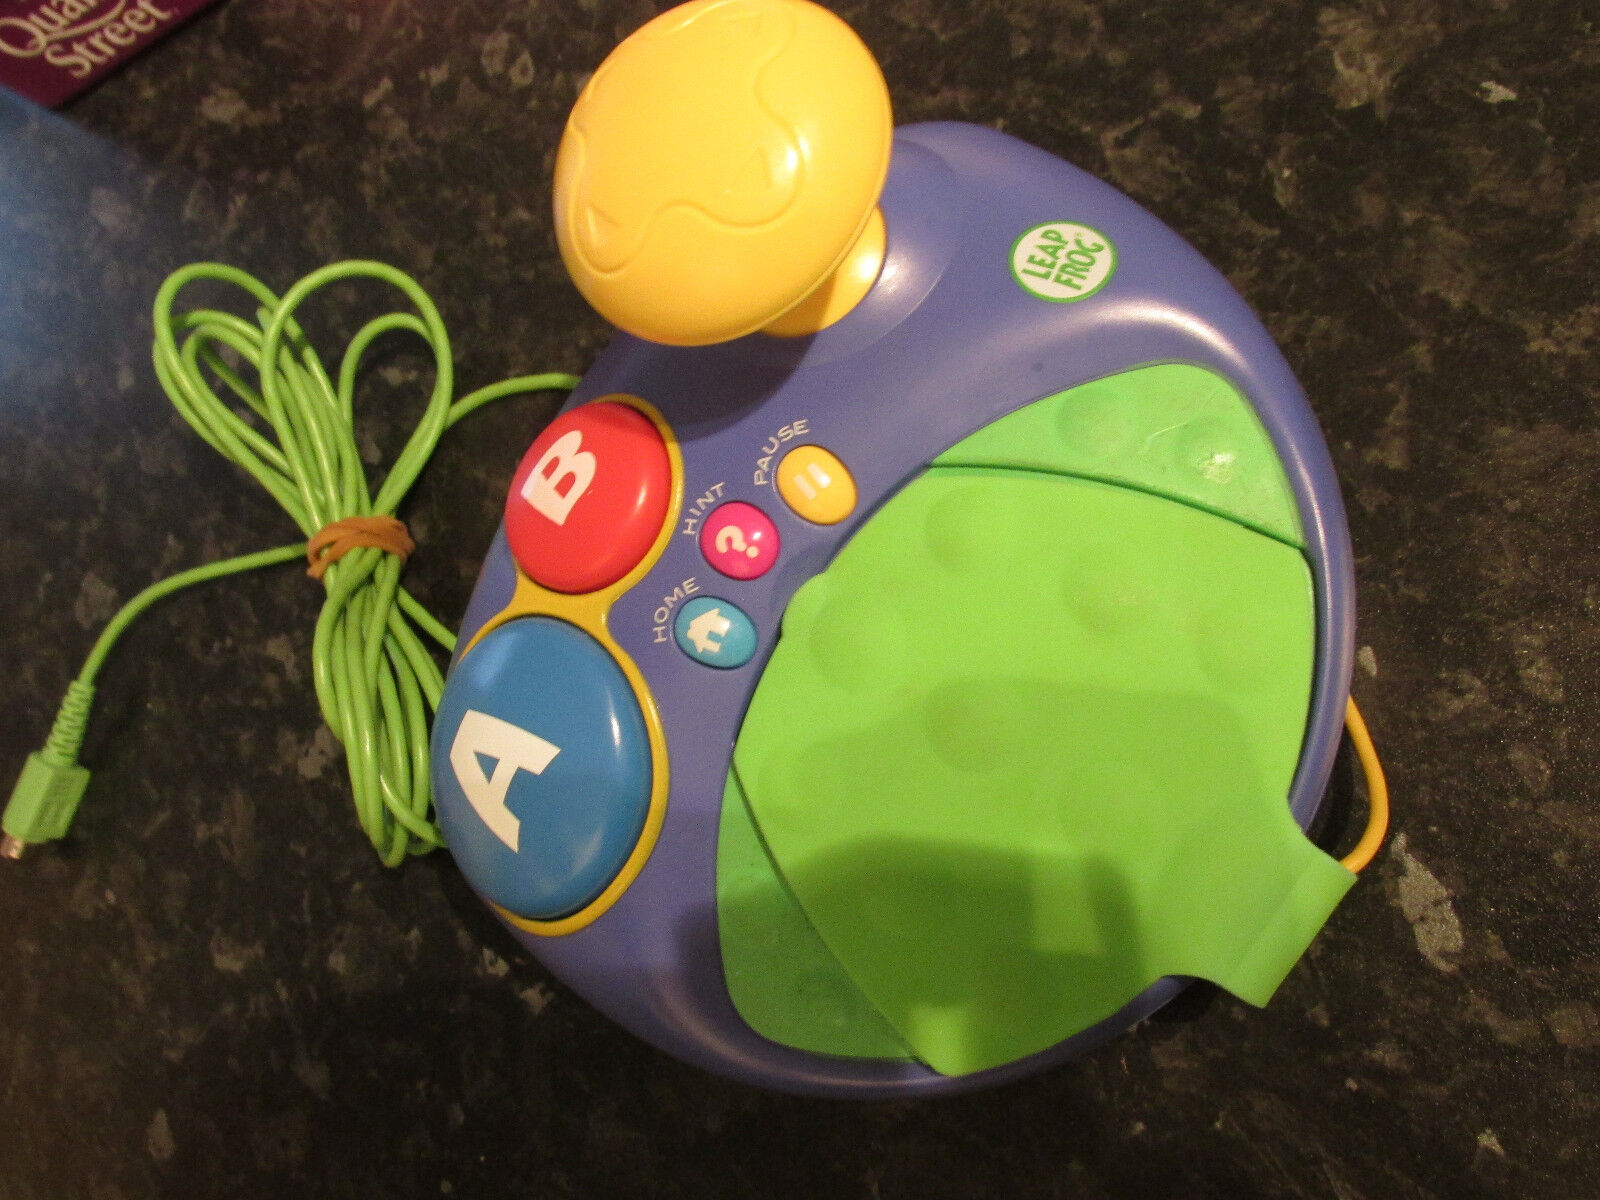 LEAP FROG LEAPSTER TV GAME CONTROLLER TV LEARNING SYSTEM